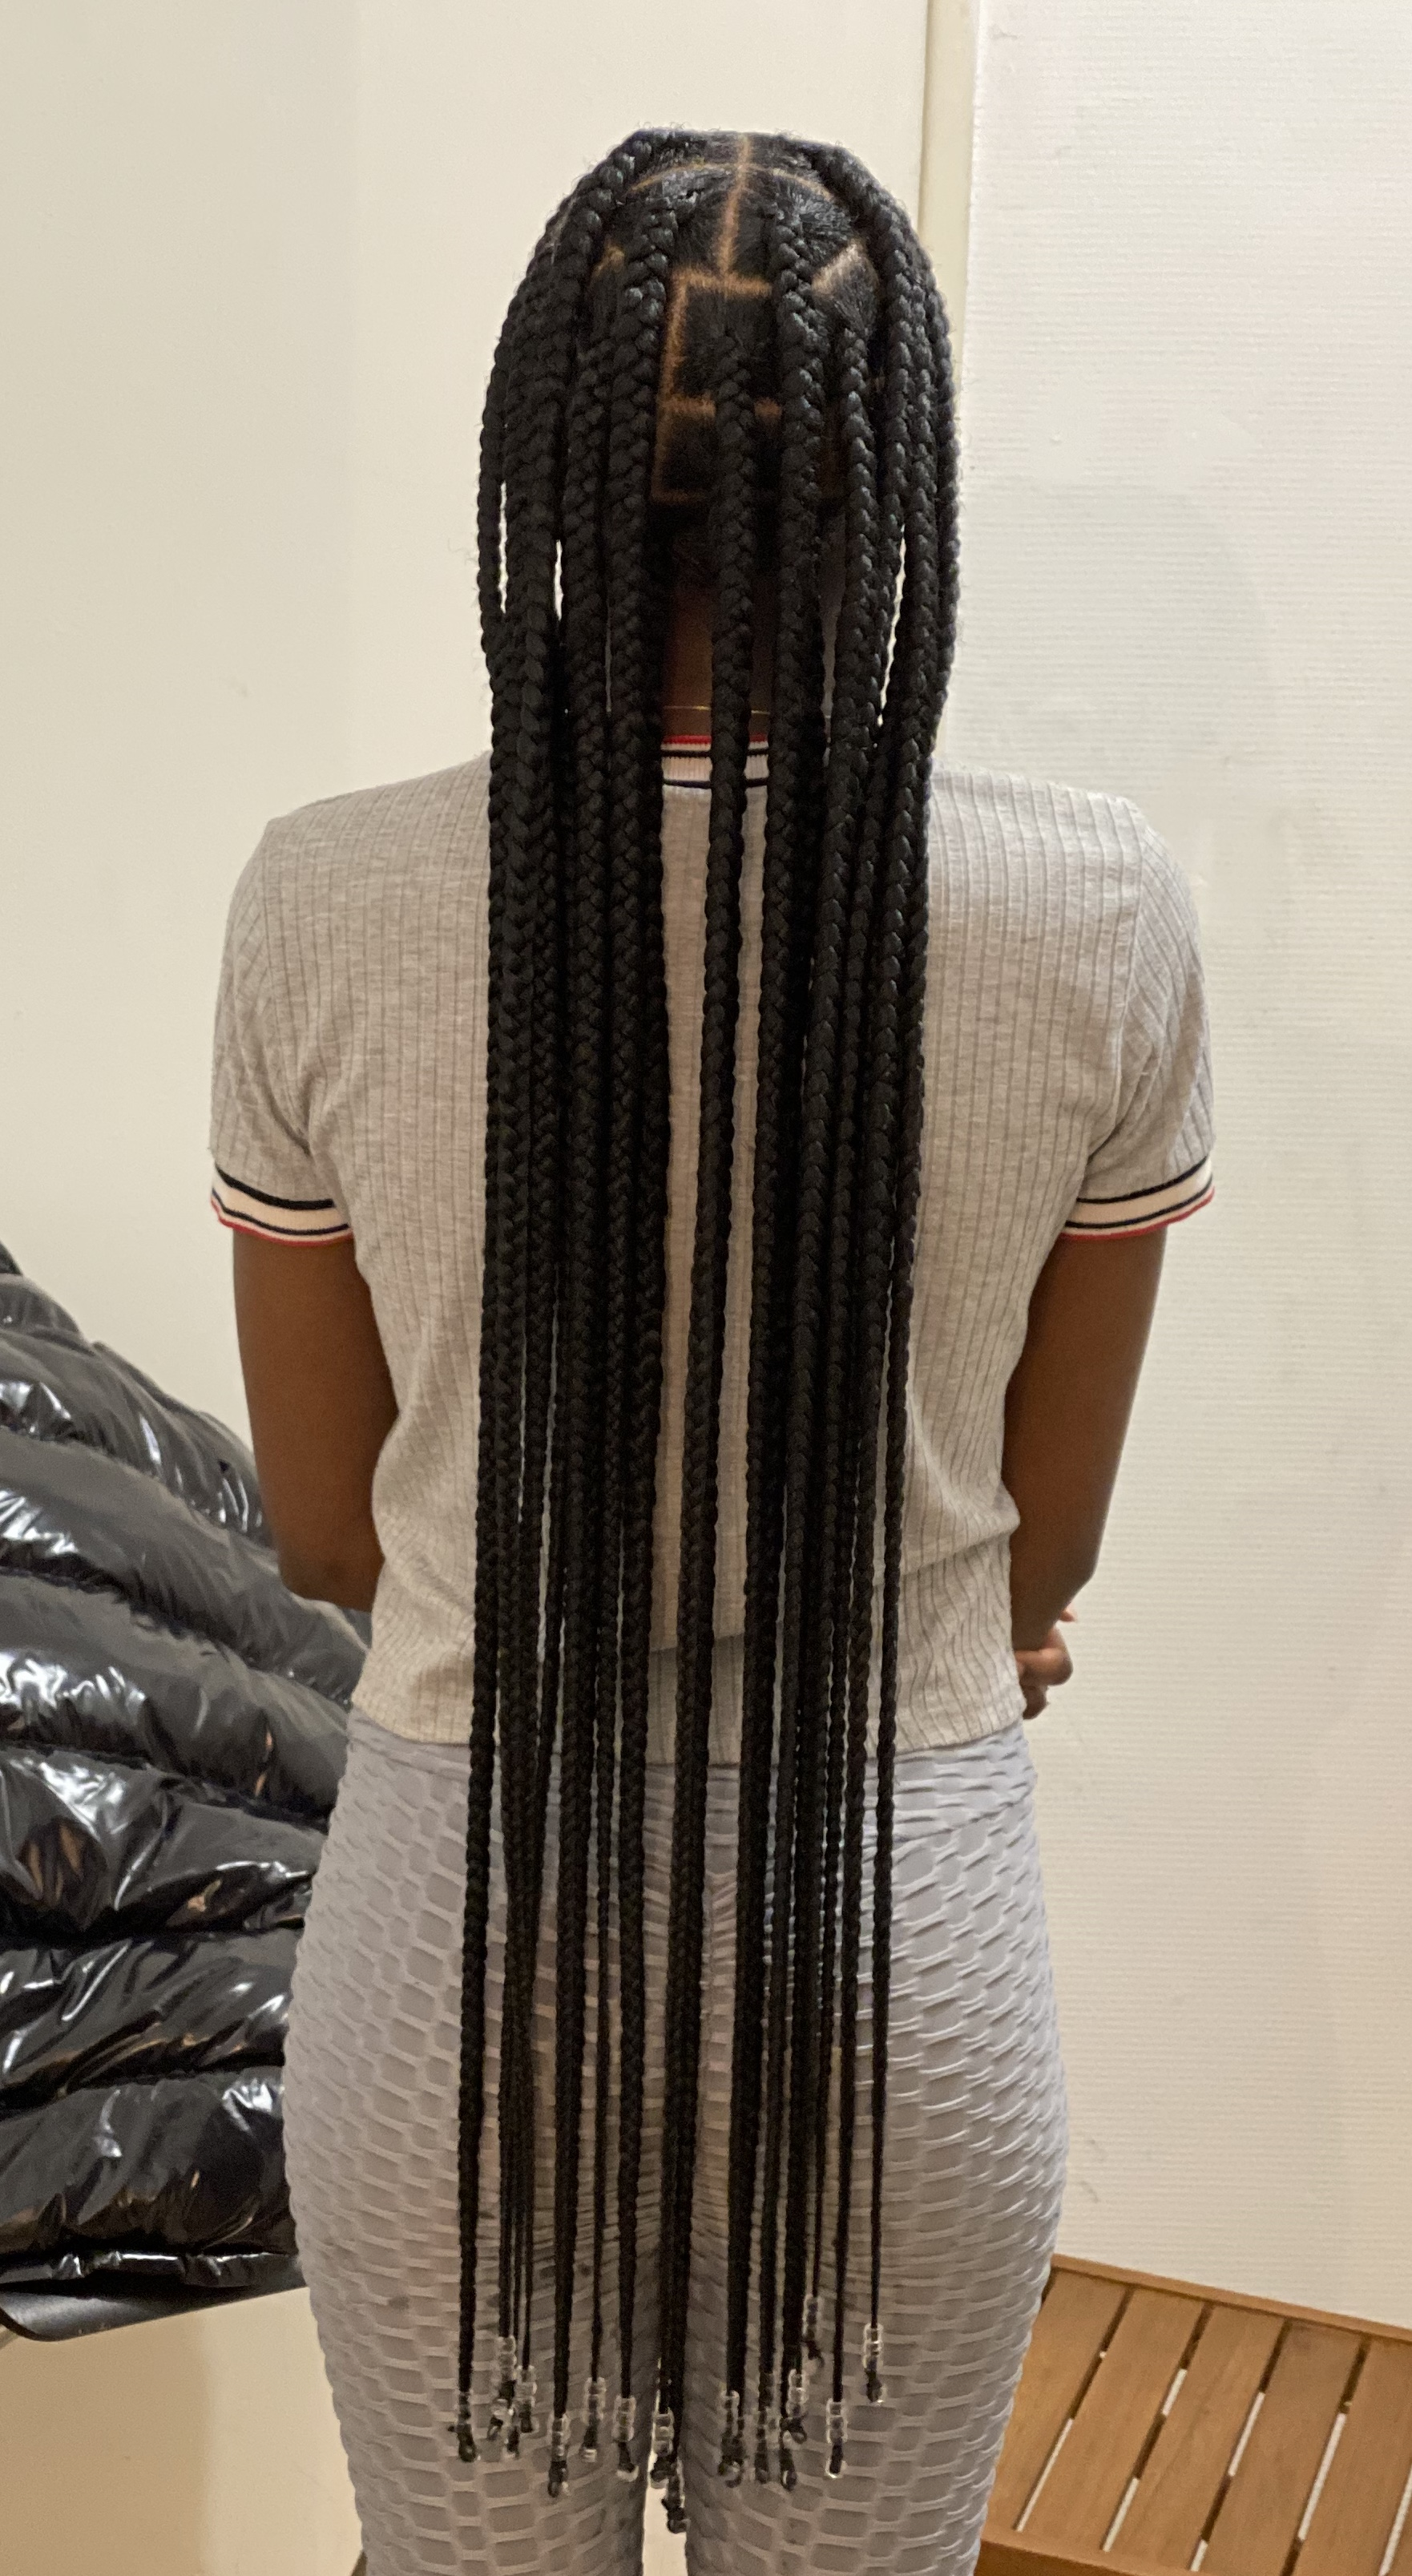 salon de coiffure afro tresse tresses box braids crochet braids vanilles tissages paris 75 77 78 91 92 93 94 95 EKBCDINY